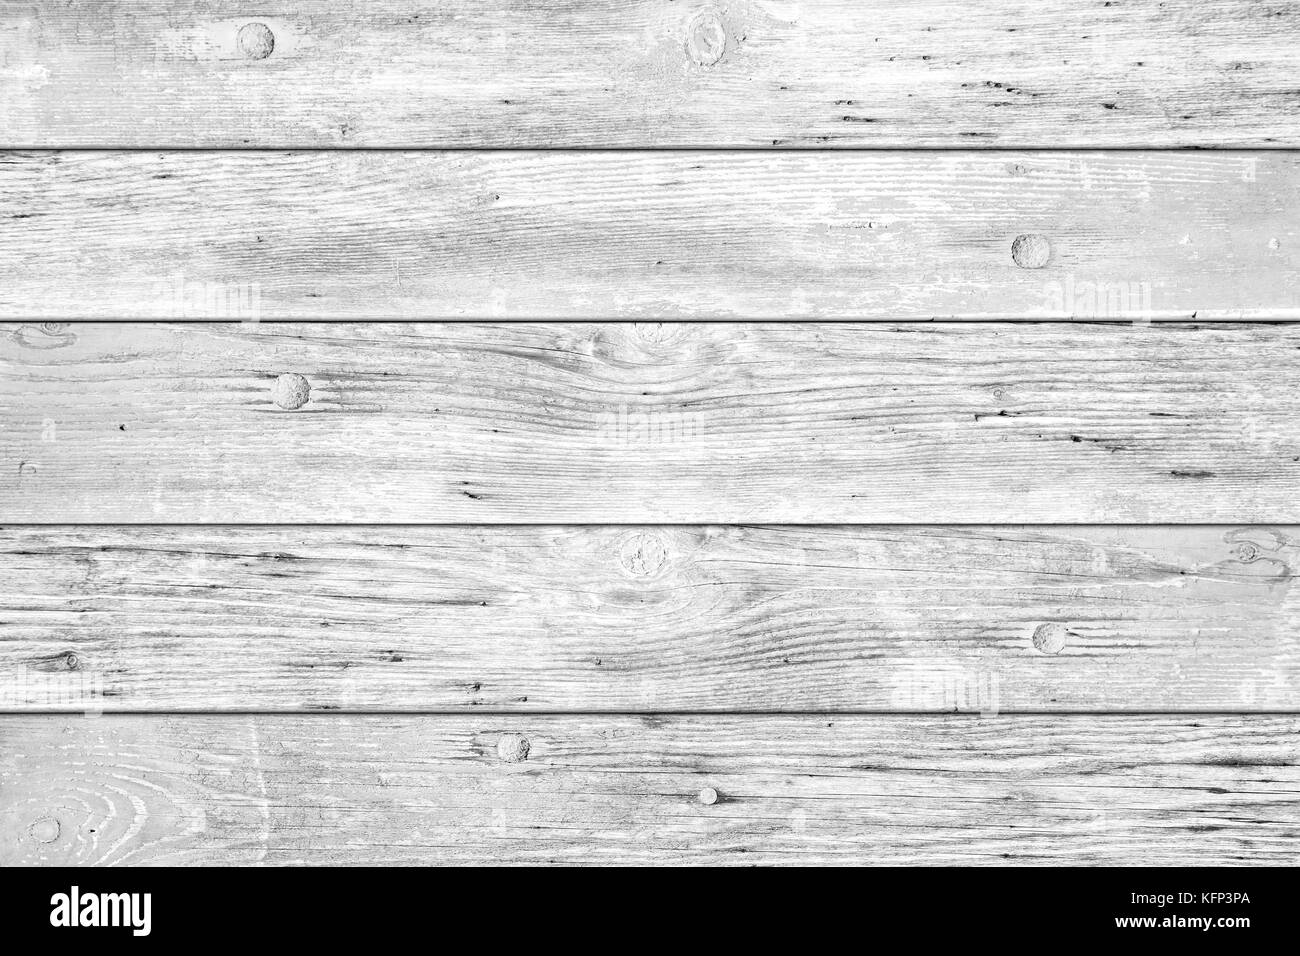 bright white wood rustic retro planks background texture - Stock Image